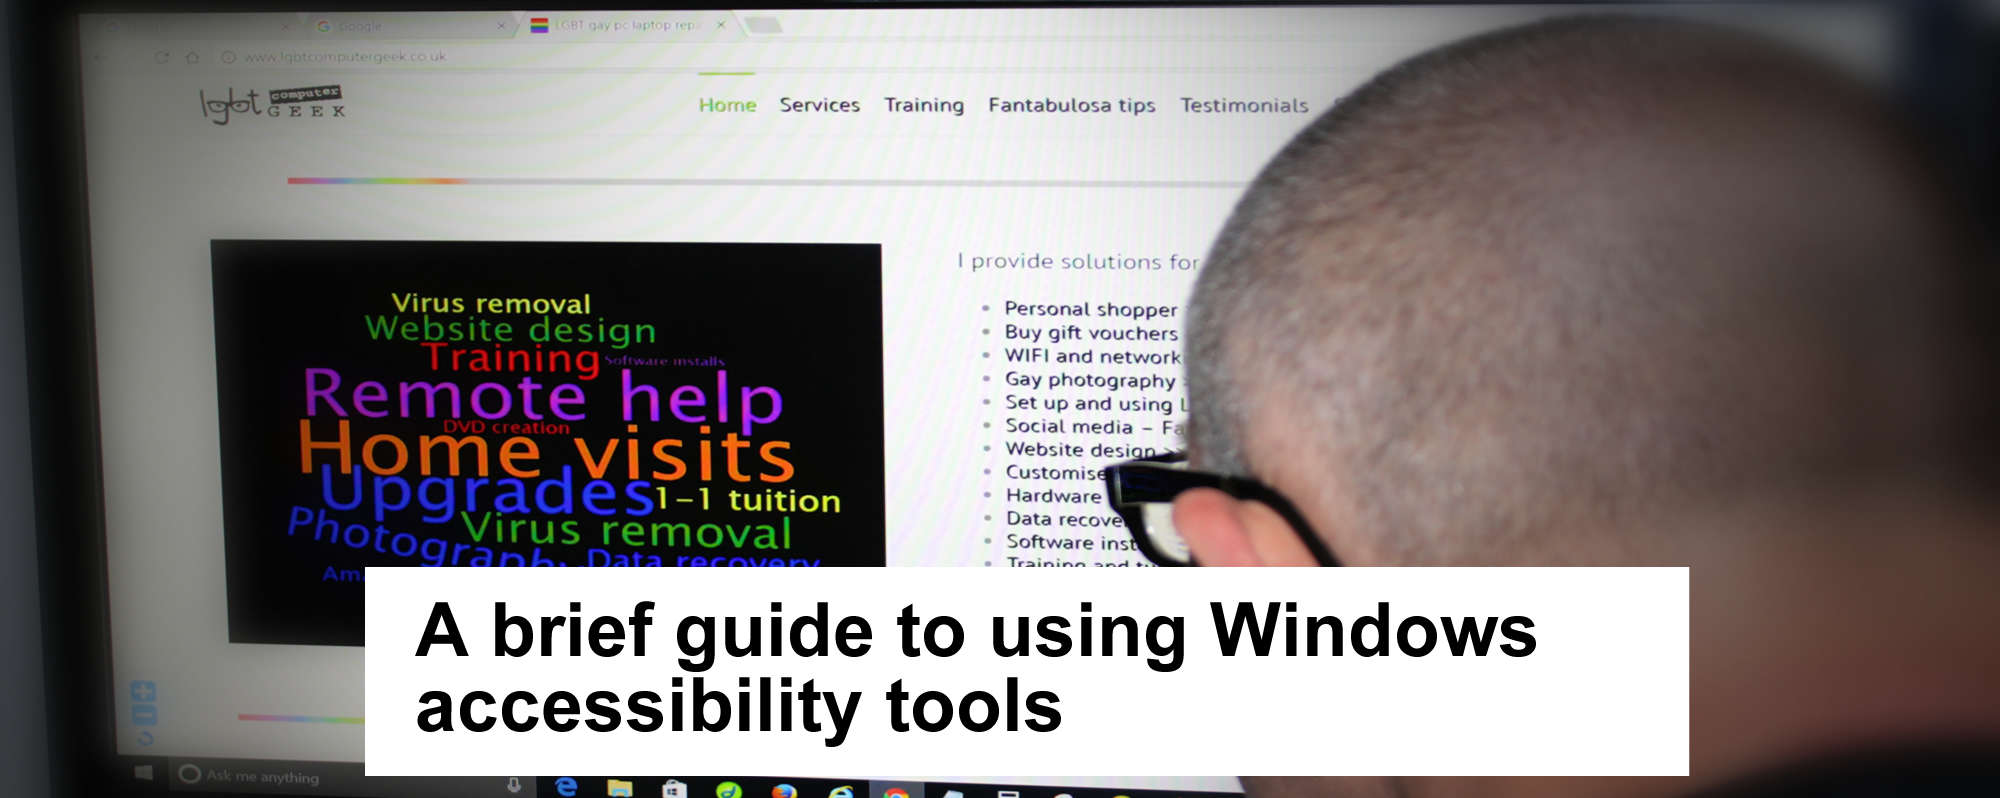 A brief guide to Windows 10 accessibility tools